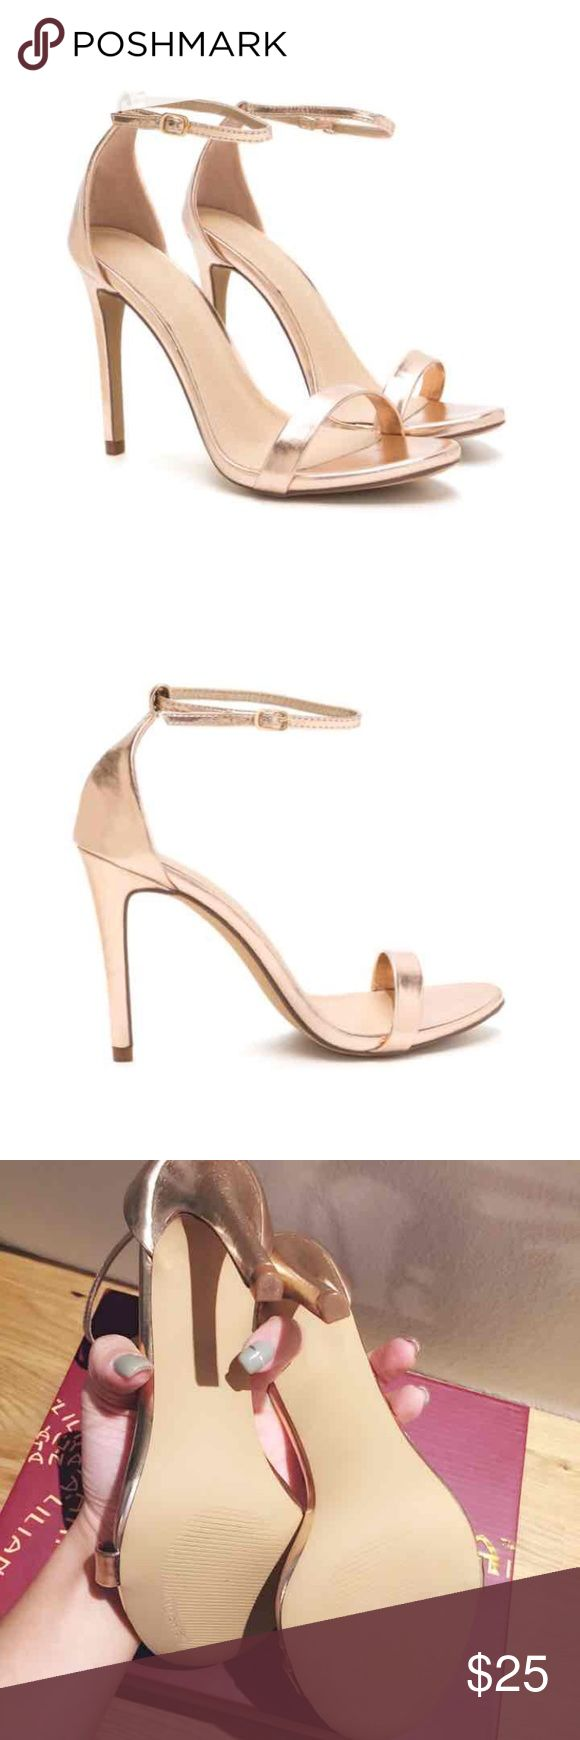 BRAND NEW! Rose gold high heels Pretty rose gold ankle strap heels.  Perfect for summer dresses! Shoes Heels